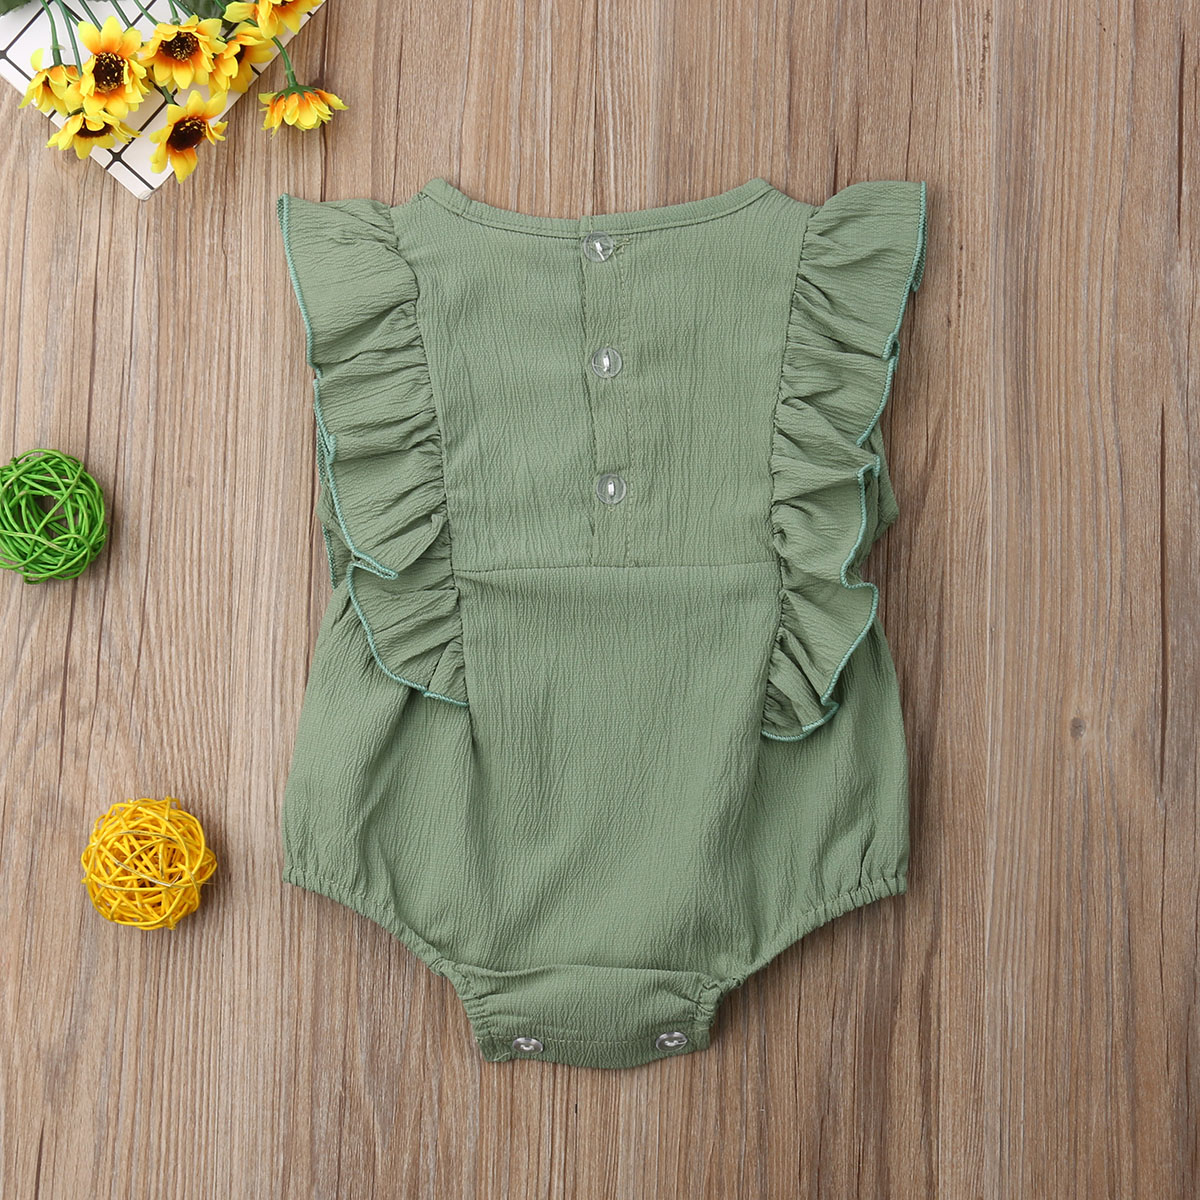 2019 Baby Girl summer clothing Amy green Ruffle flower Romper Jumpsuit Outfits for Kid clothes Children newborn infant 0 24M in Rompers from Mother Kids